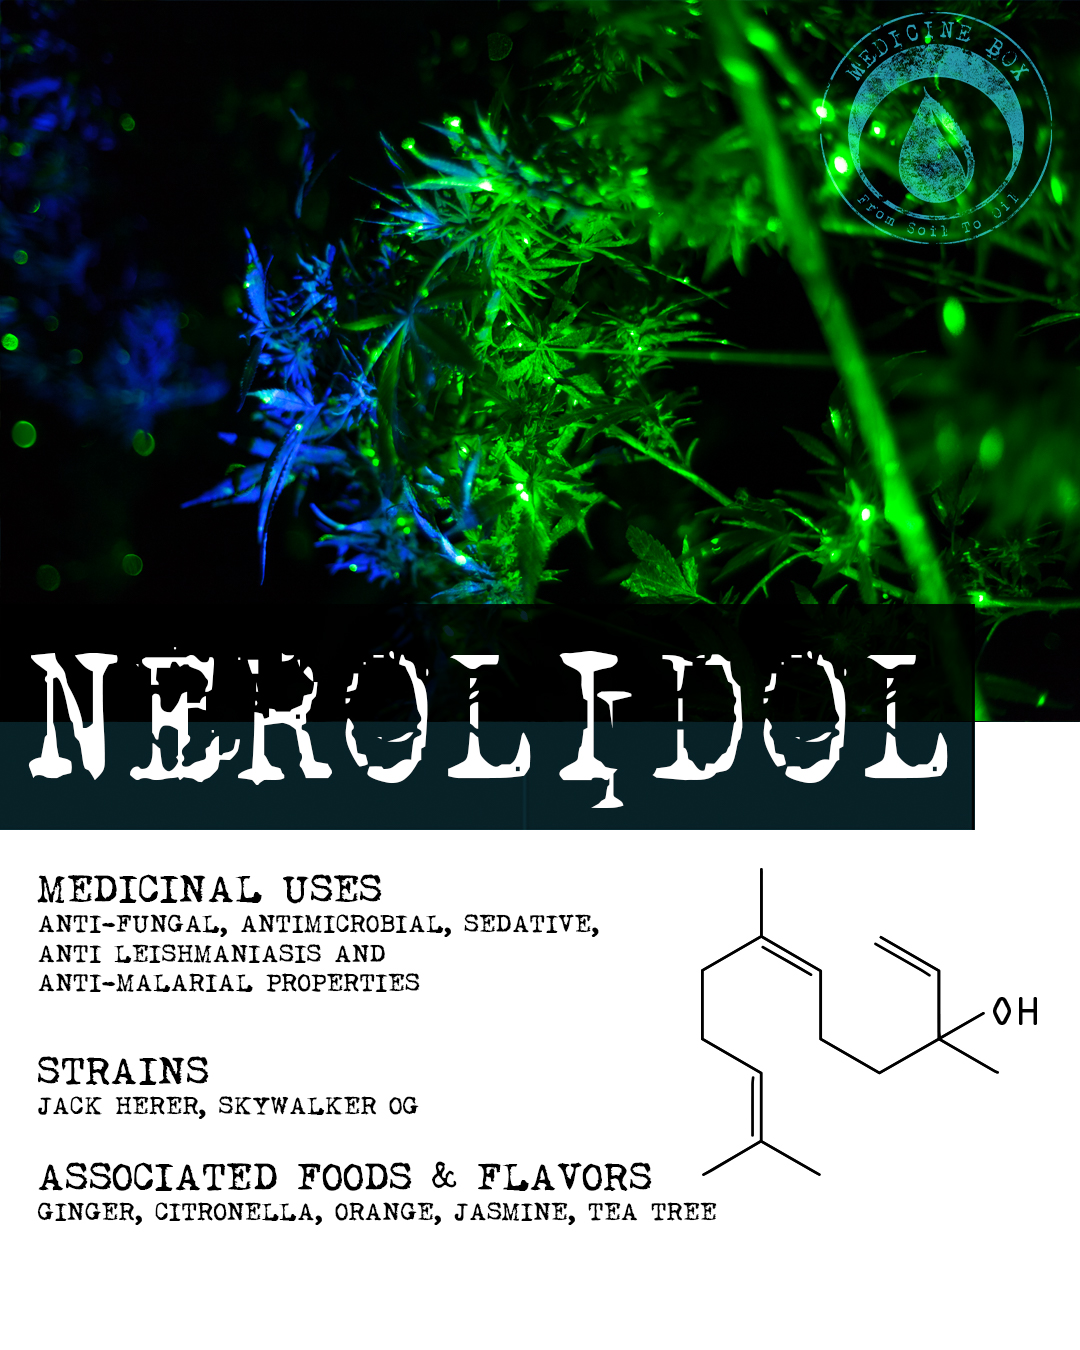 terpene tuesday from medicine box nerolidol